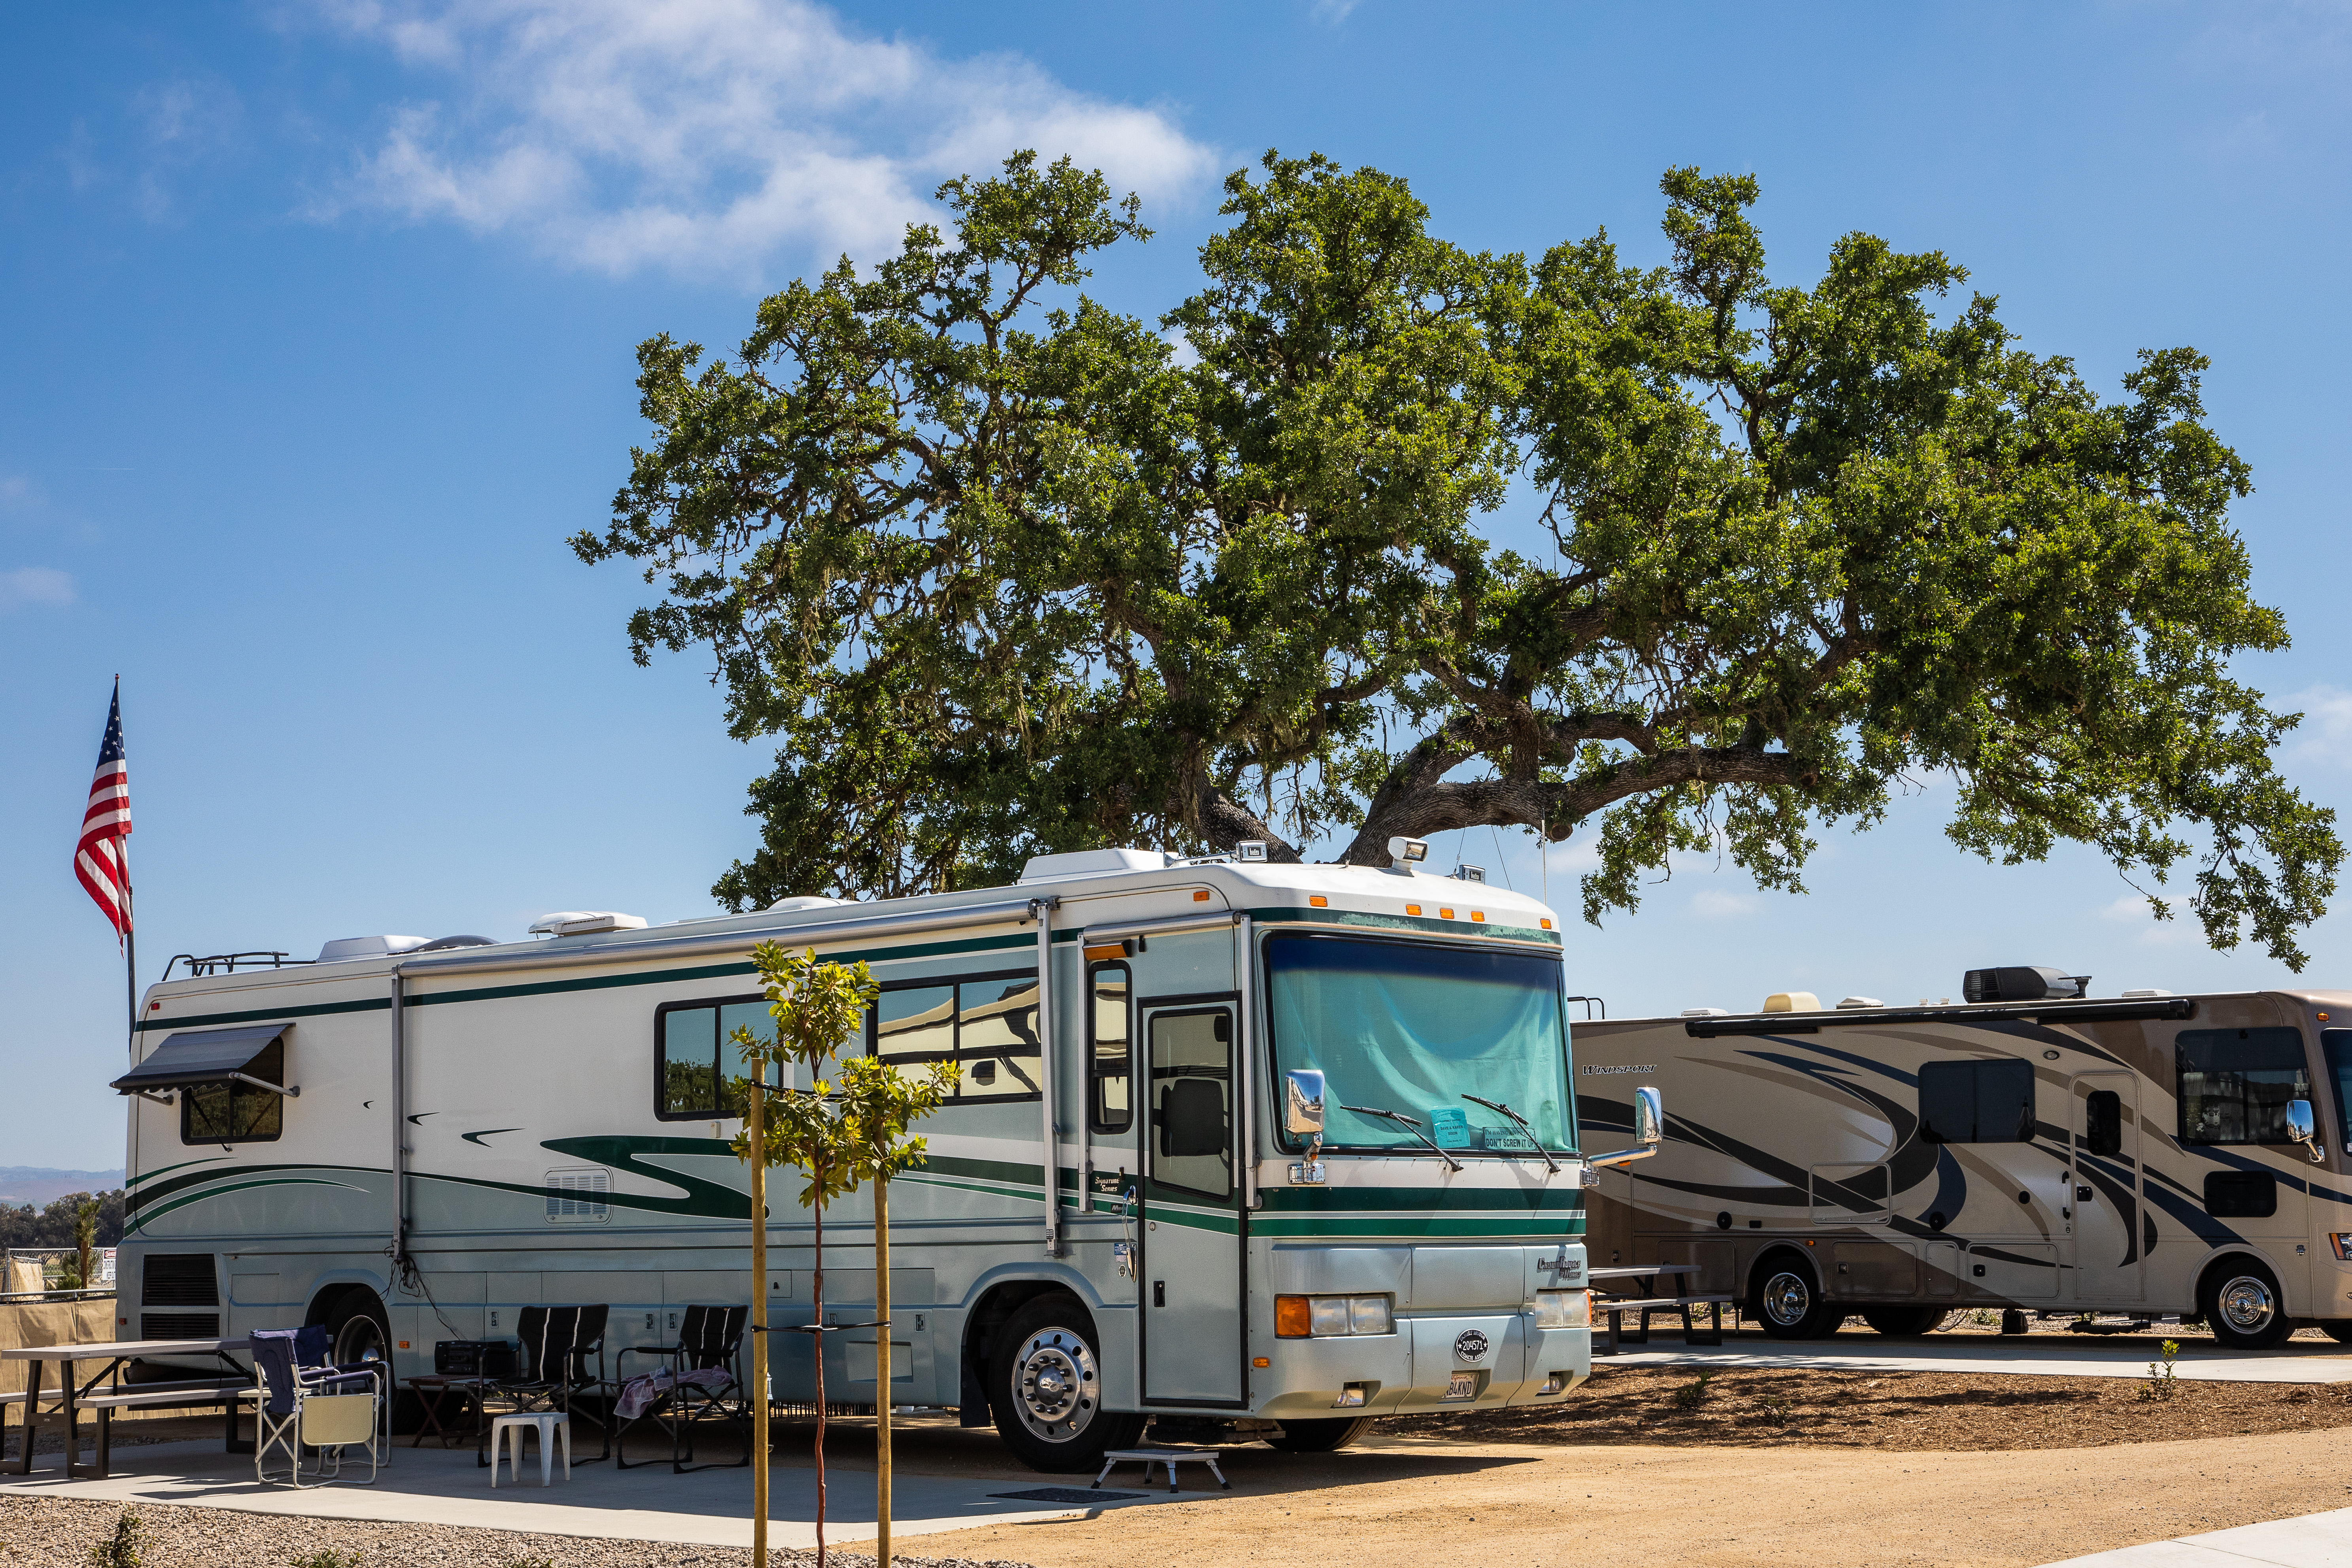 RV parked under an ample, shade-providing oak.